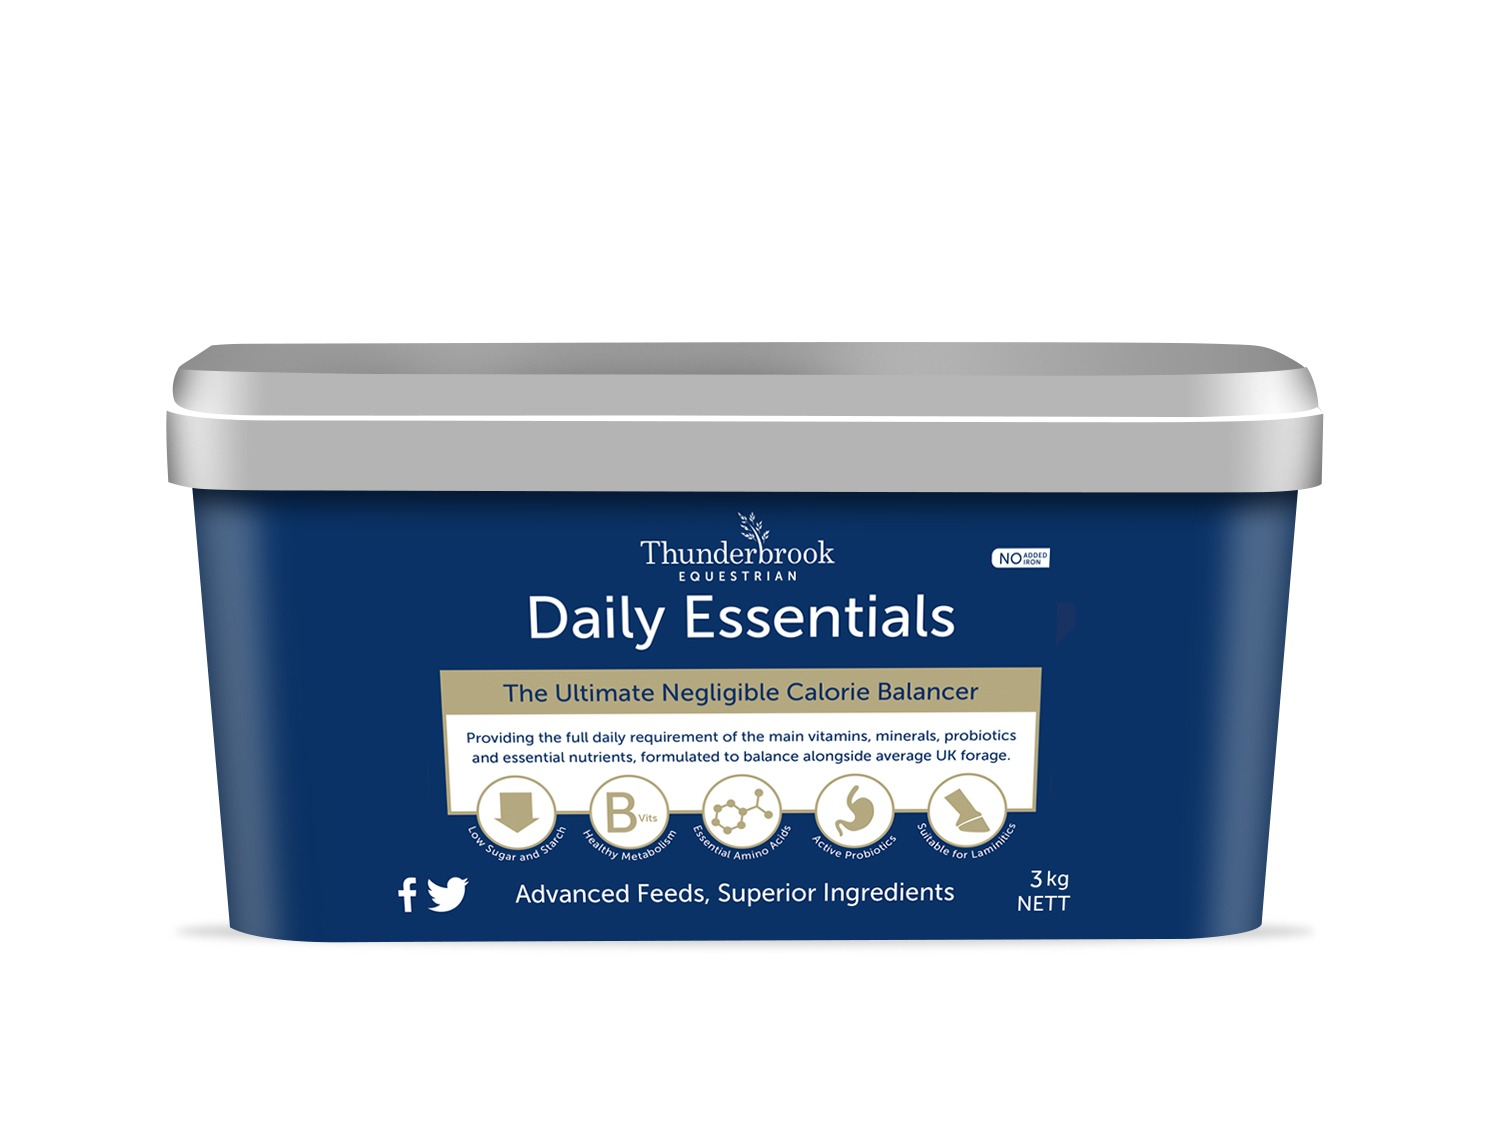 TB Daily Essentials 3kg